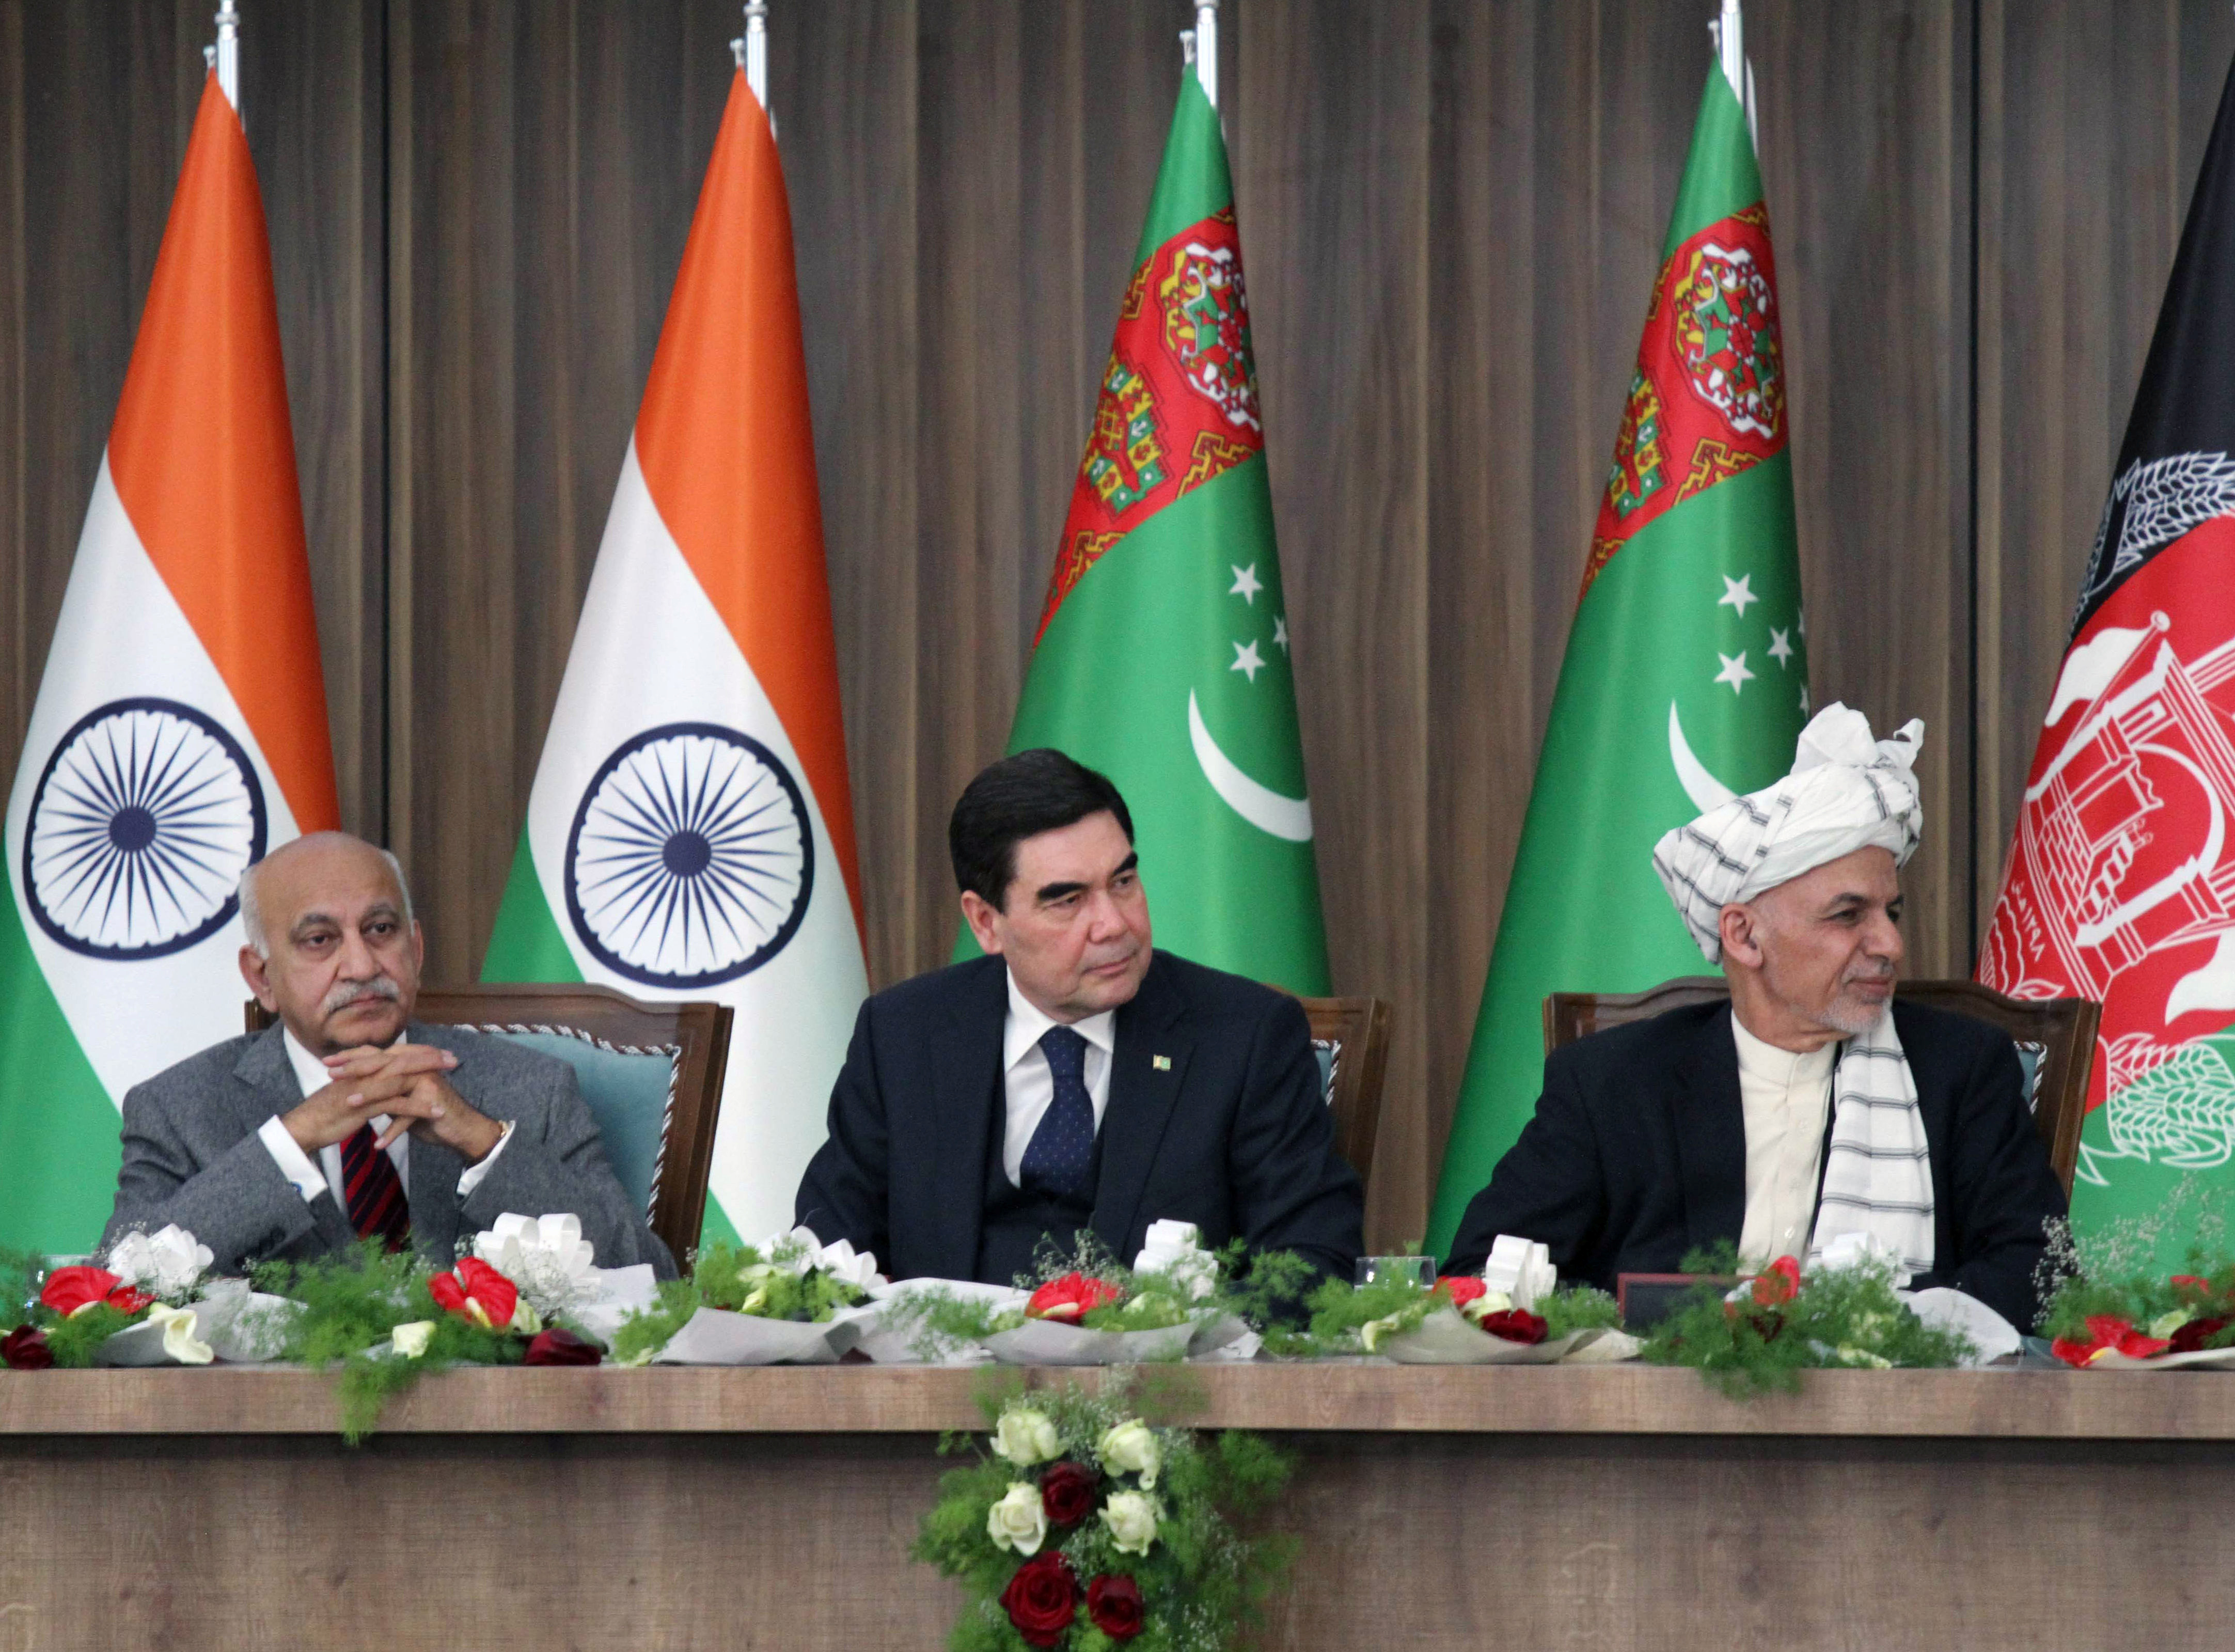 Afghanistan President Ashraf Ghani, right, Turkmenistan President Kurbanguly Berdymukhamedov, center, and India's Minister of State for External Affairs M.J. Akbar attend the inauguration ceremony of TAPI pipeline construction work, in Herat, Afghani...